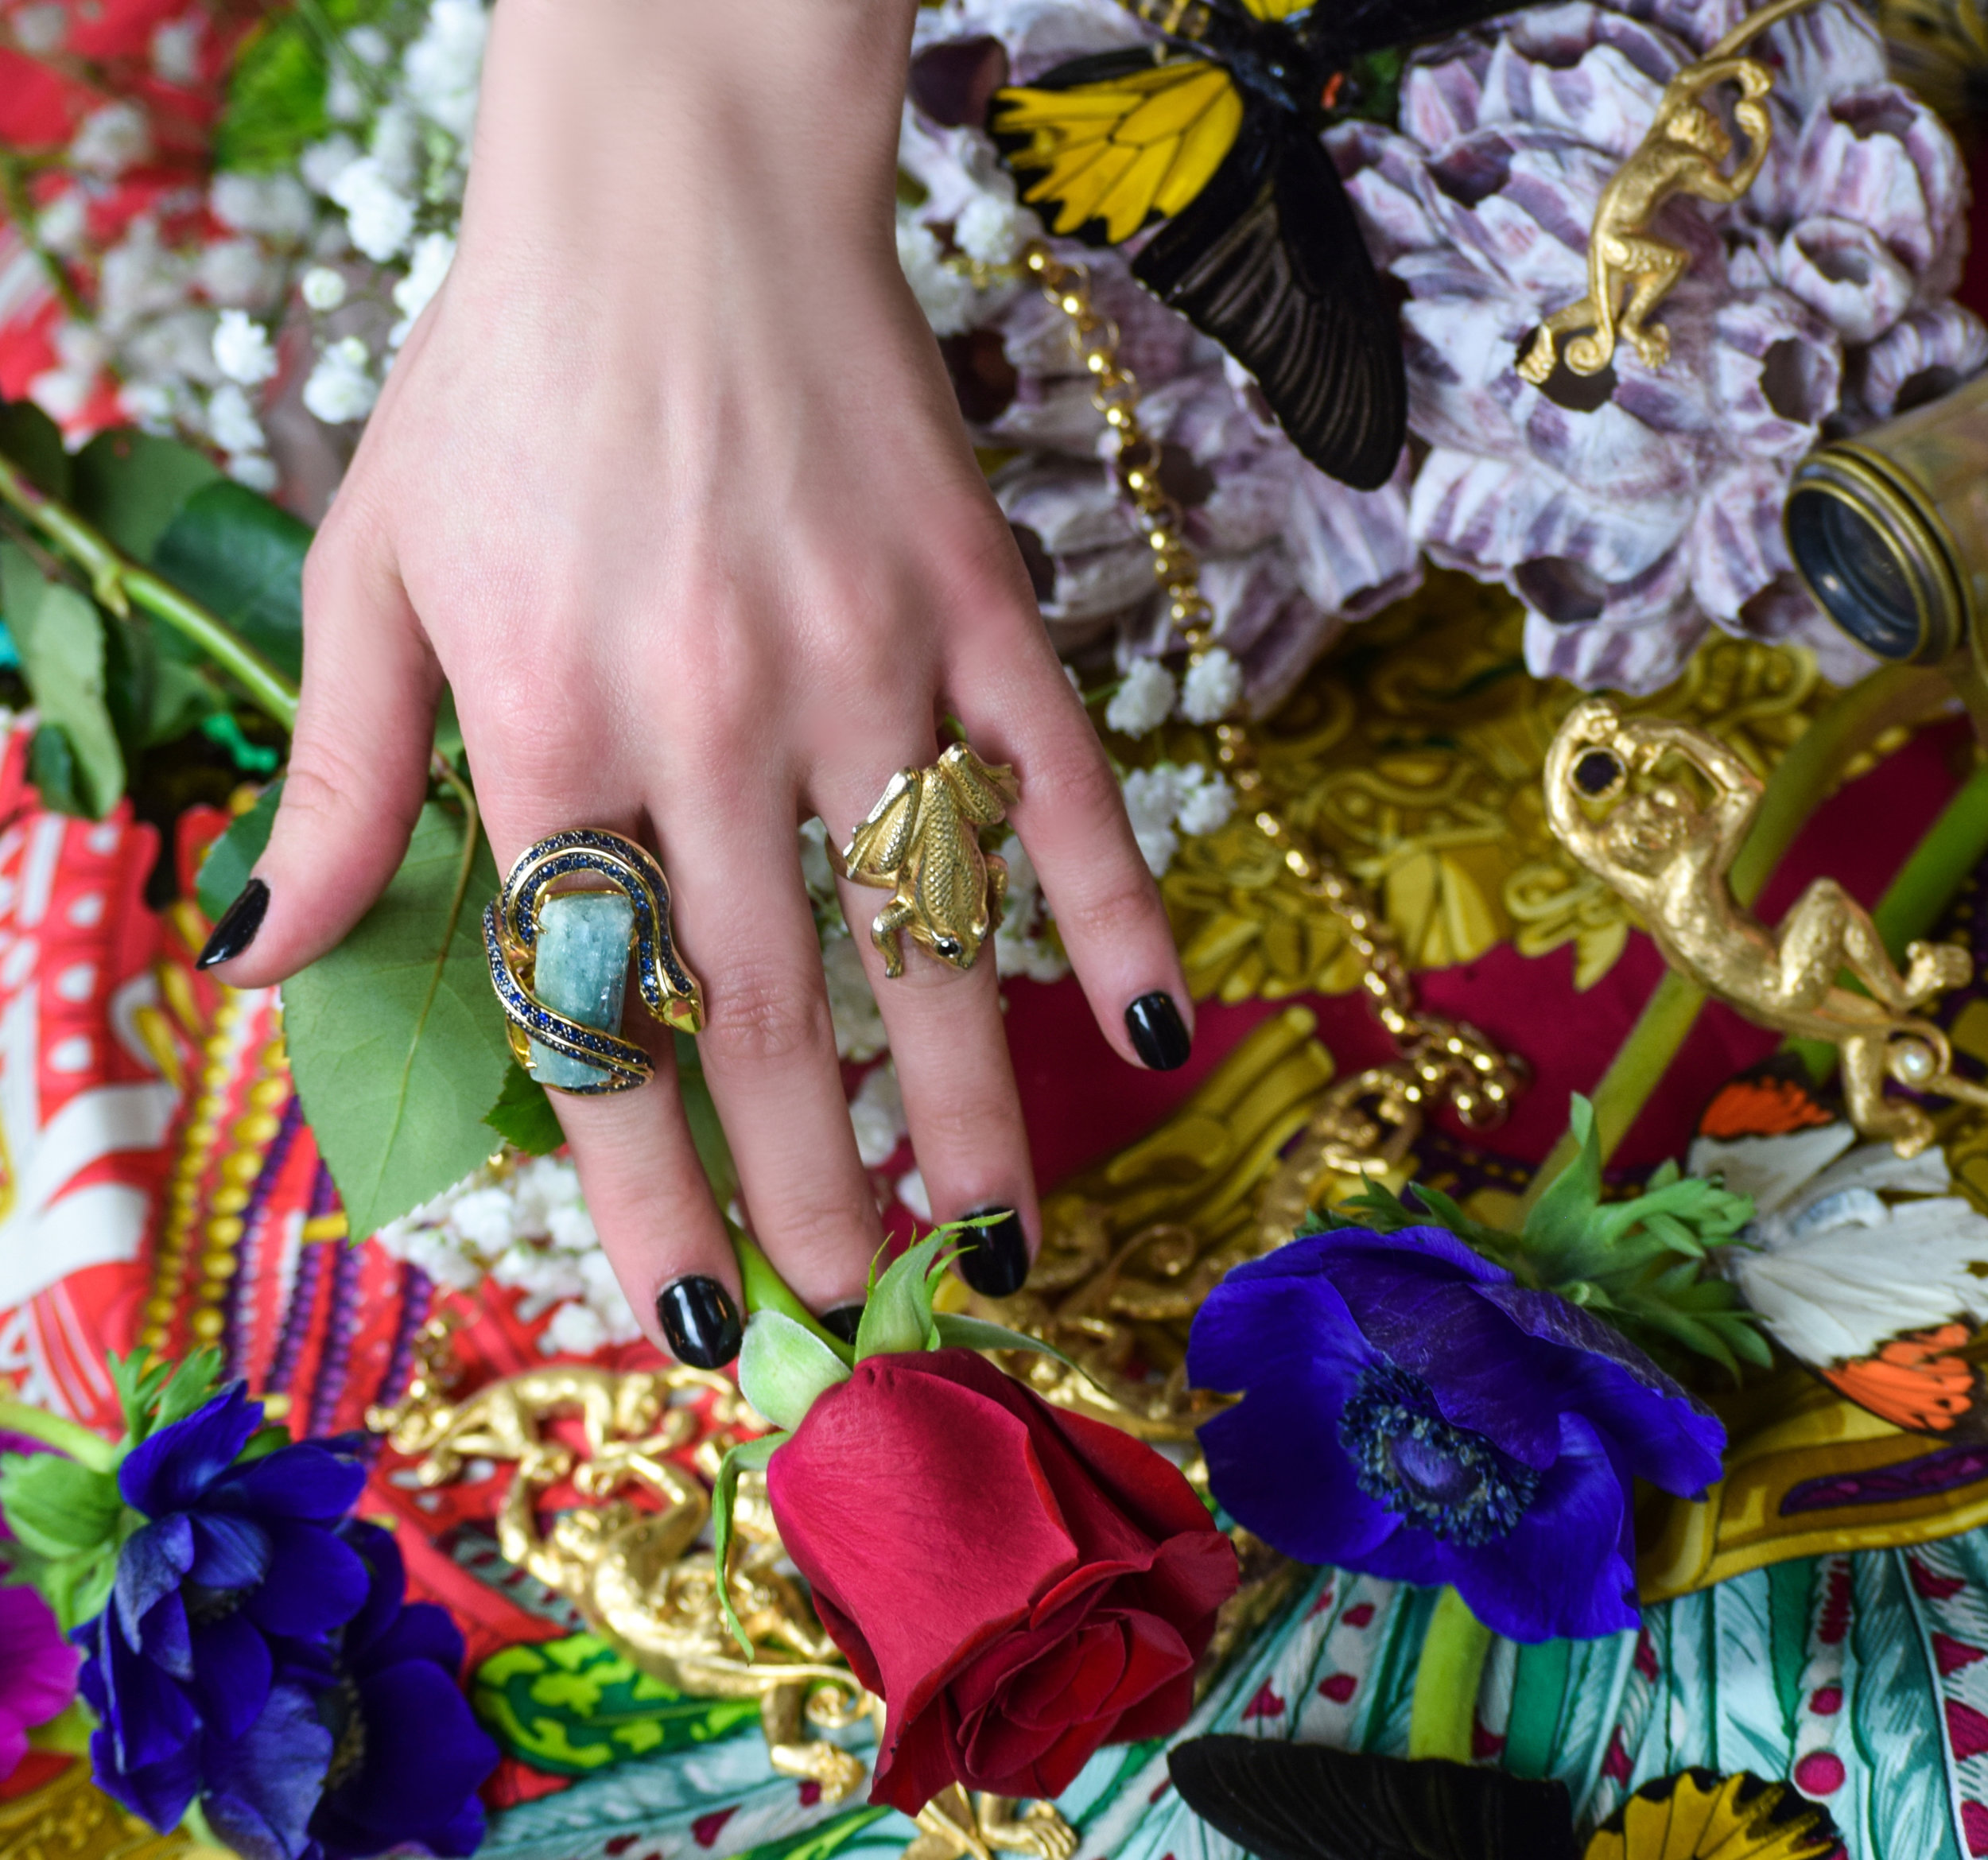 frog ring and roses-1 copy.jpg